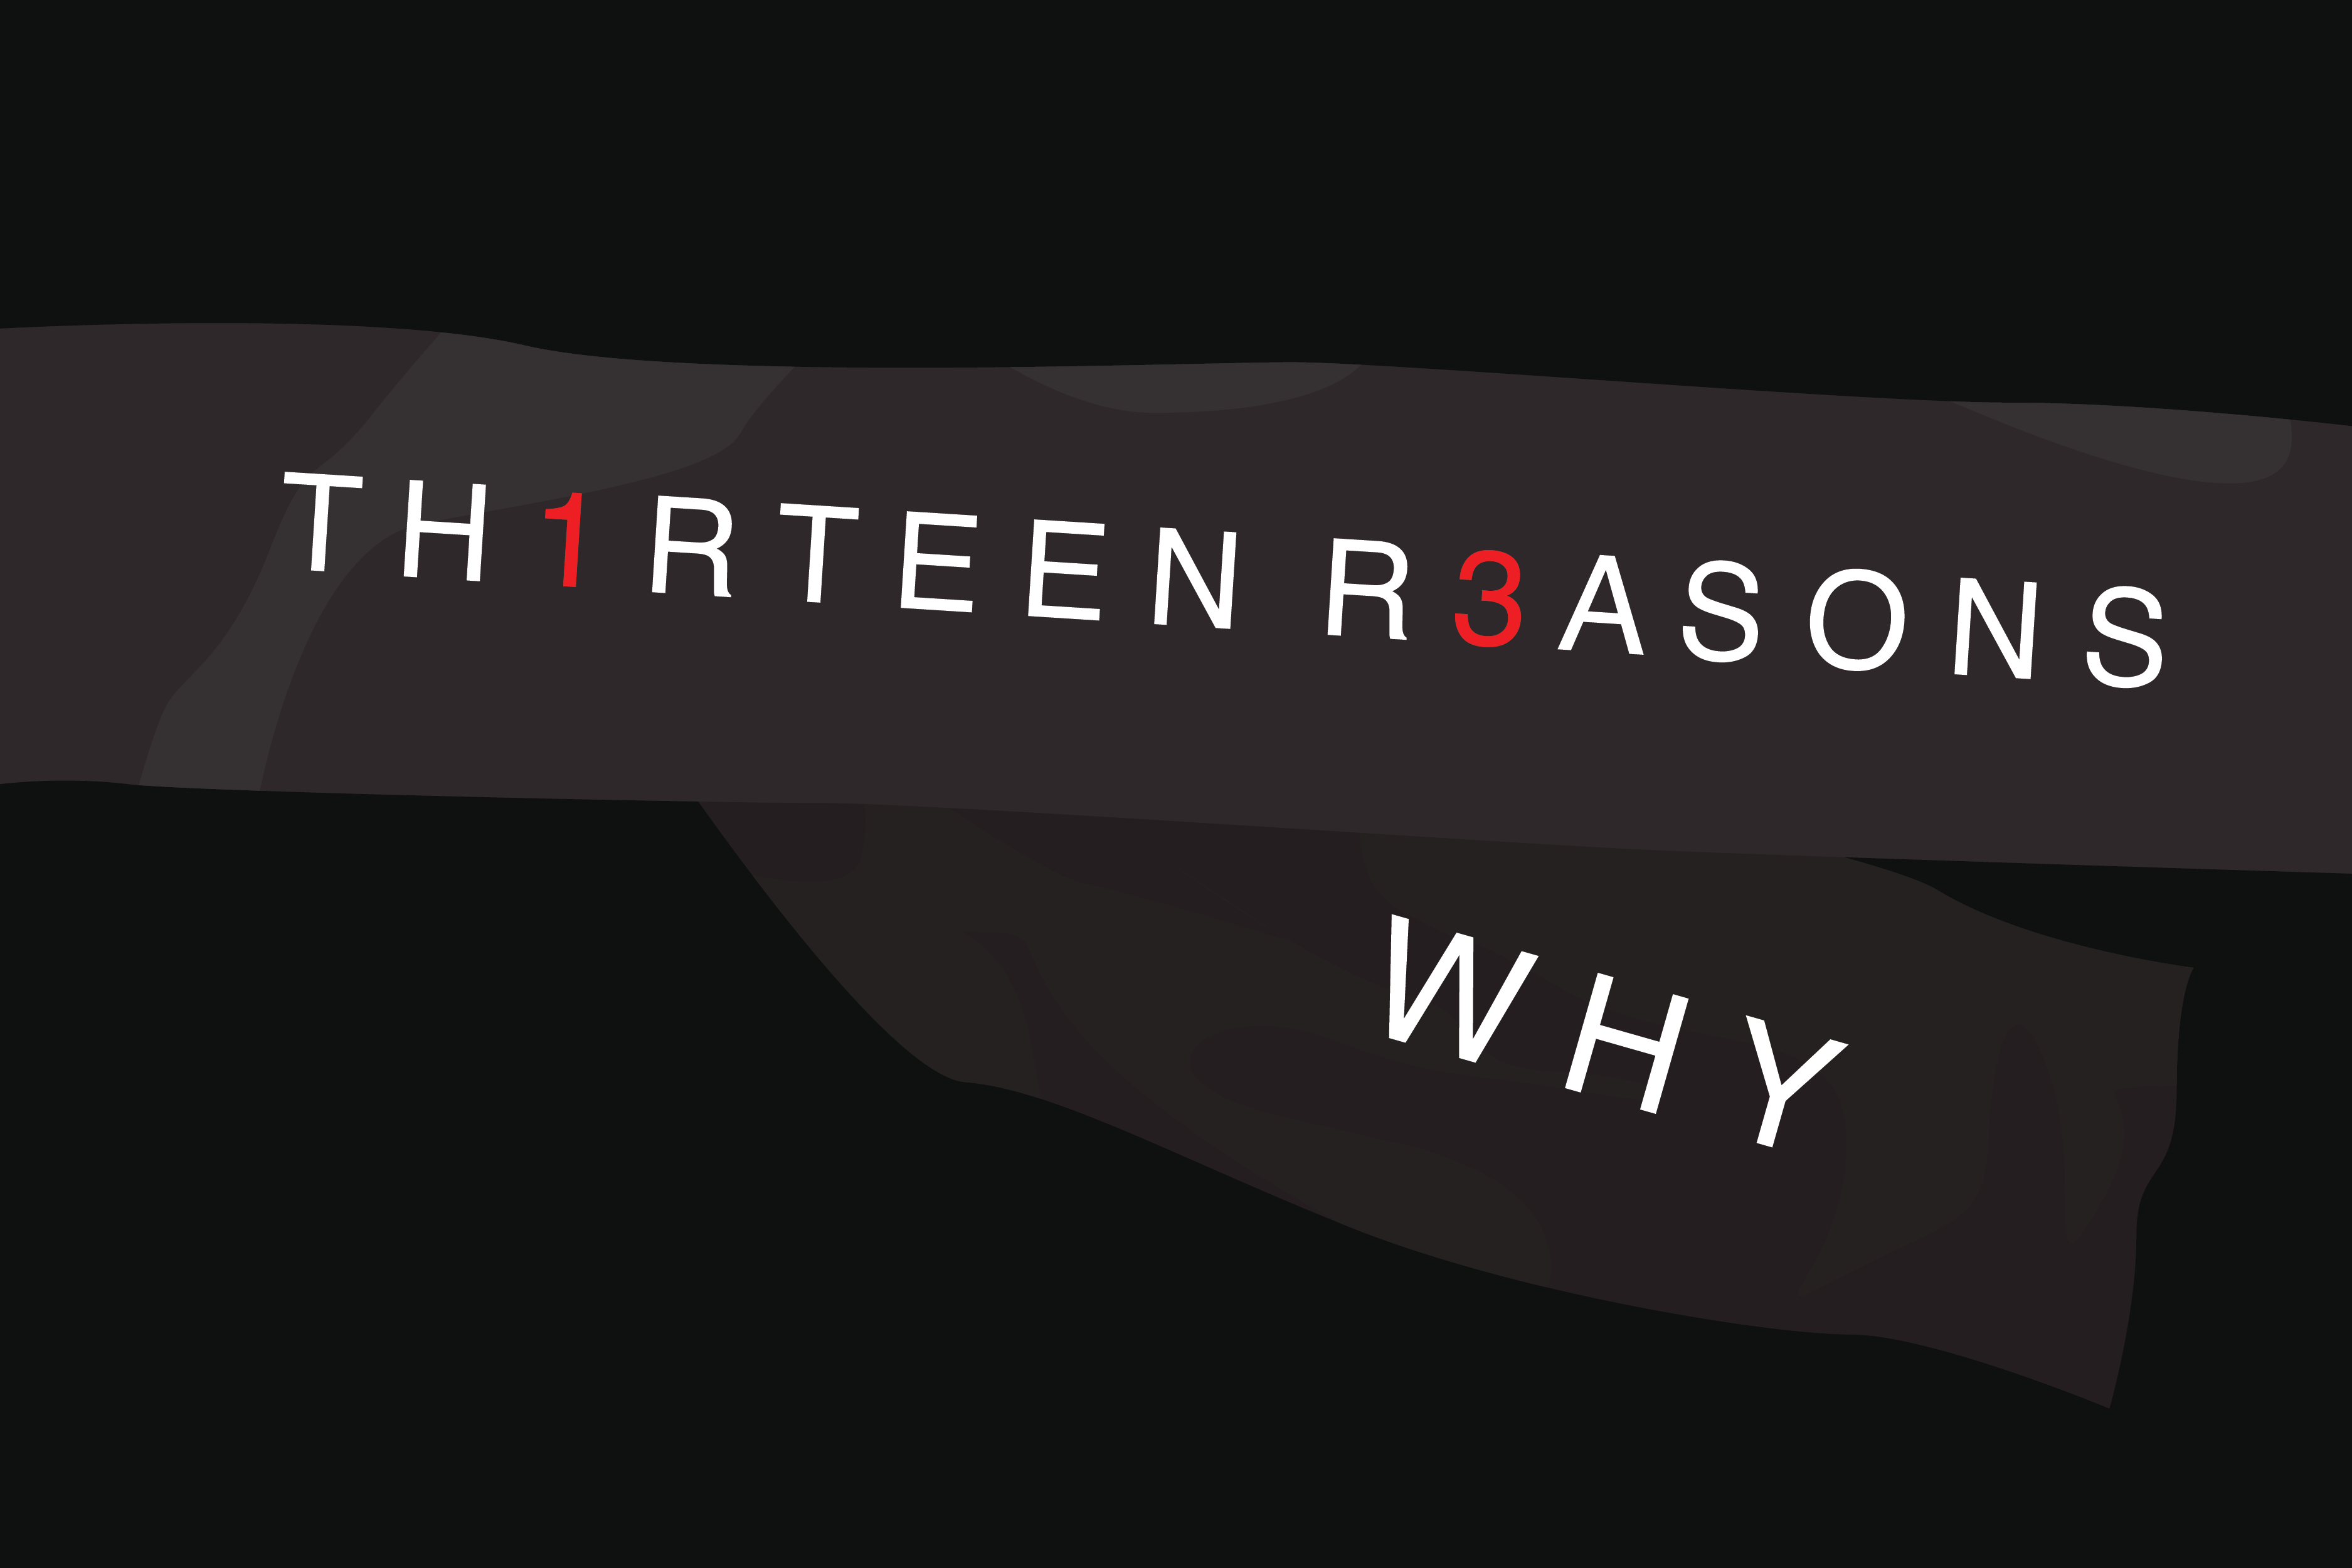 13 Reasons Why promotes problematic narrative